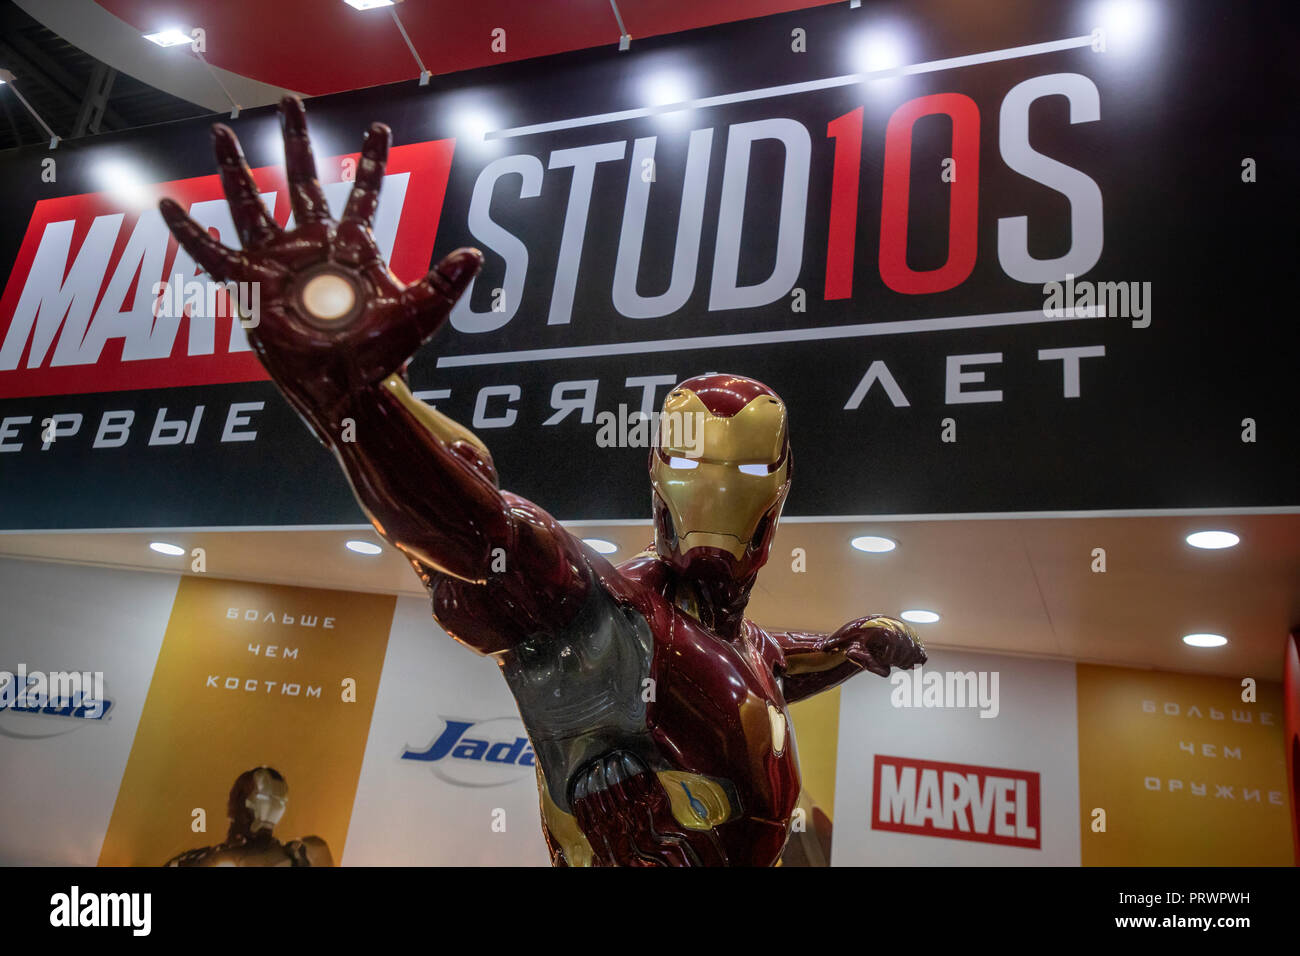 Moscou, Russie. 04 octobre 2018 Participants de Comic Con France 2018 et le 2018 Igromir ordinateur et jeux vidéos à des expositions Crocus Expo International Exhibition Center de la région de Moscou, Russie Crédit : Nikolay Vinokourov/Alamy Live News Photo Stock